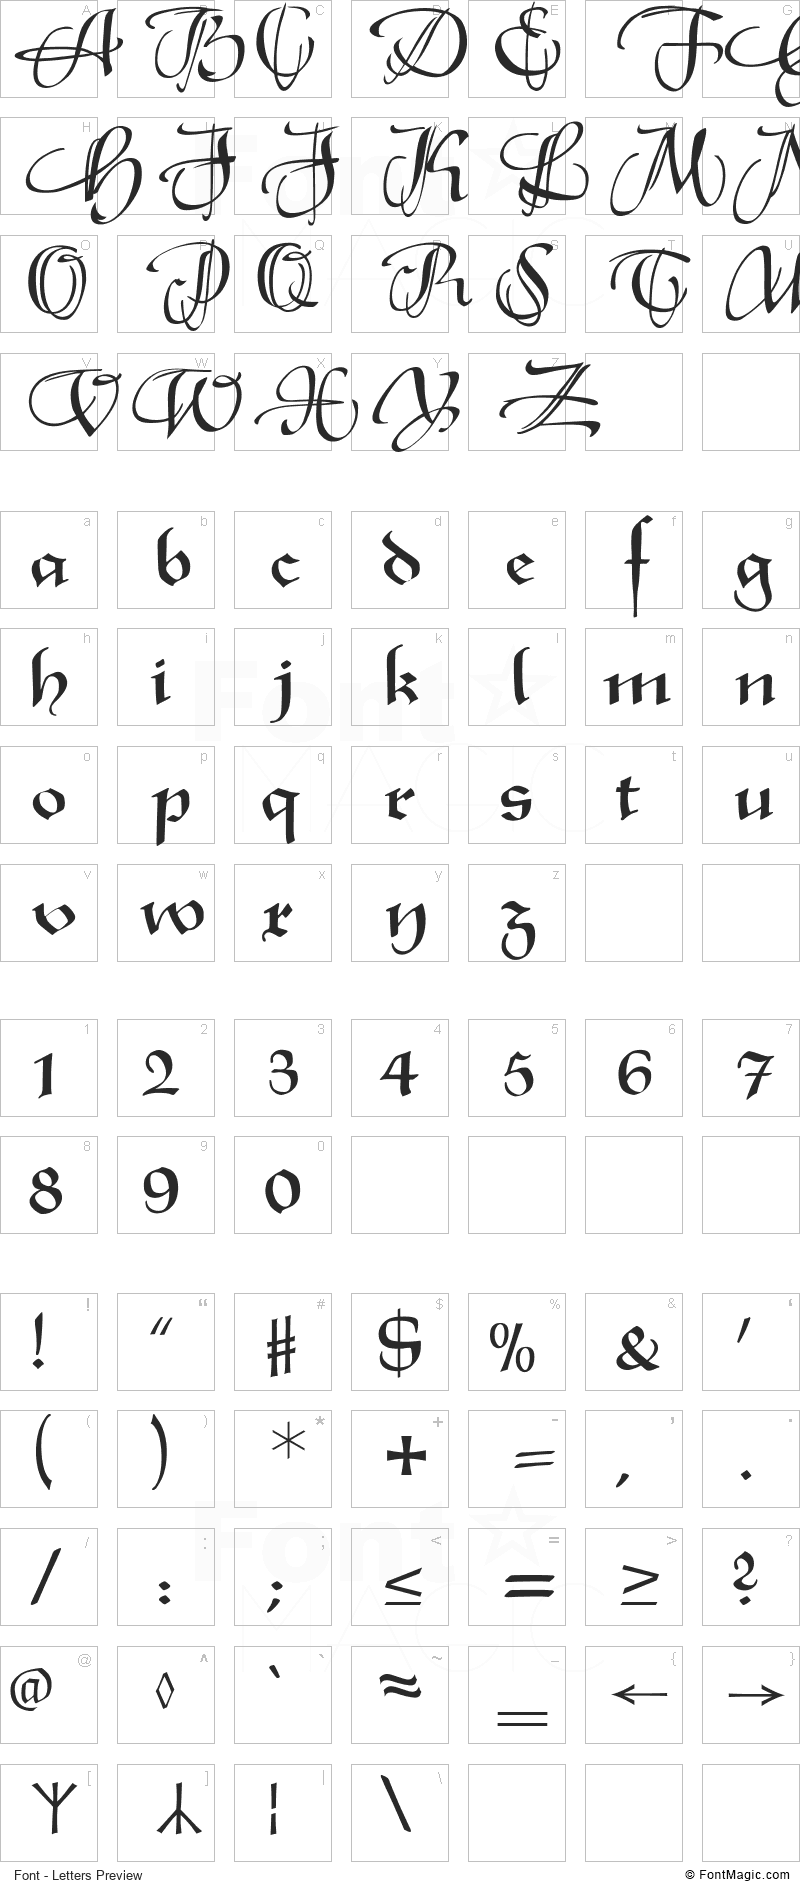 XmasTerpieceSwashes Font - All Latters Preview Chart